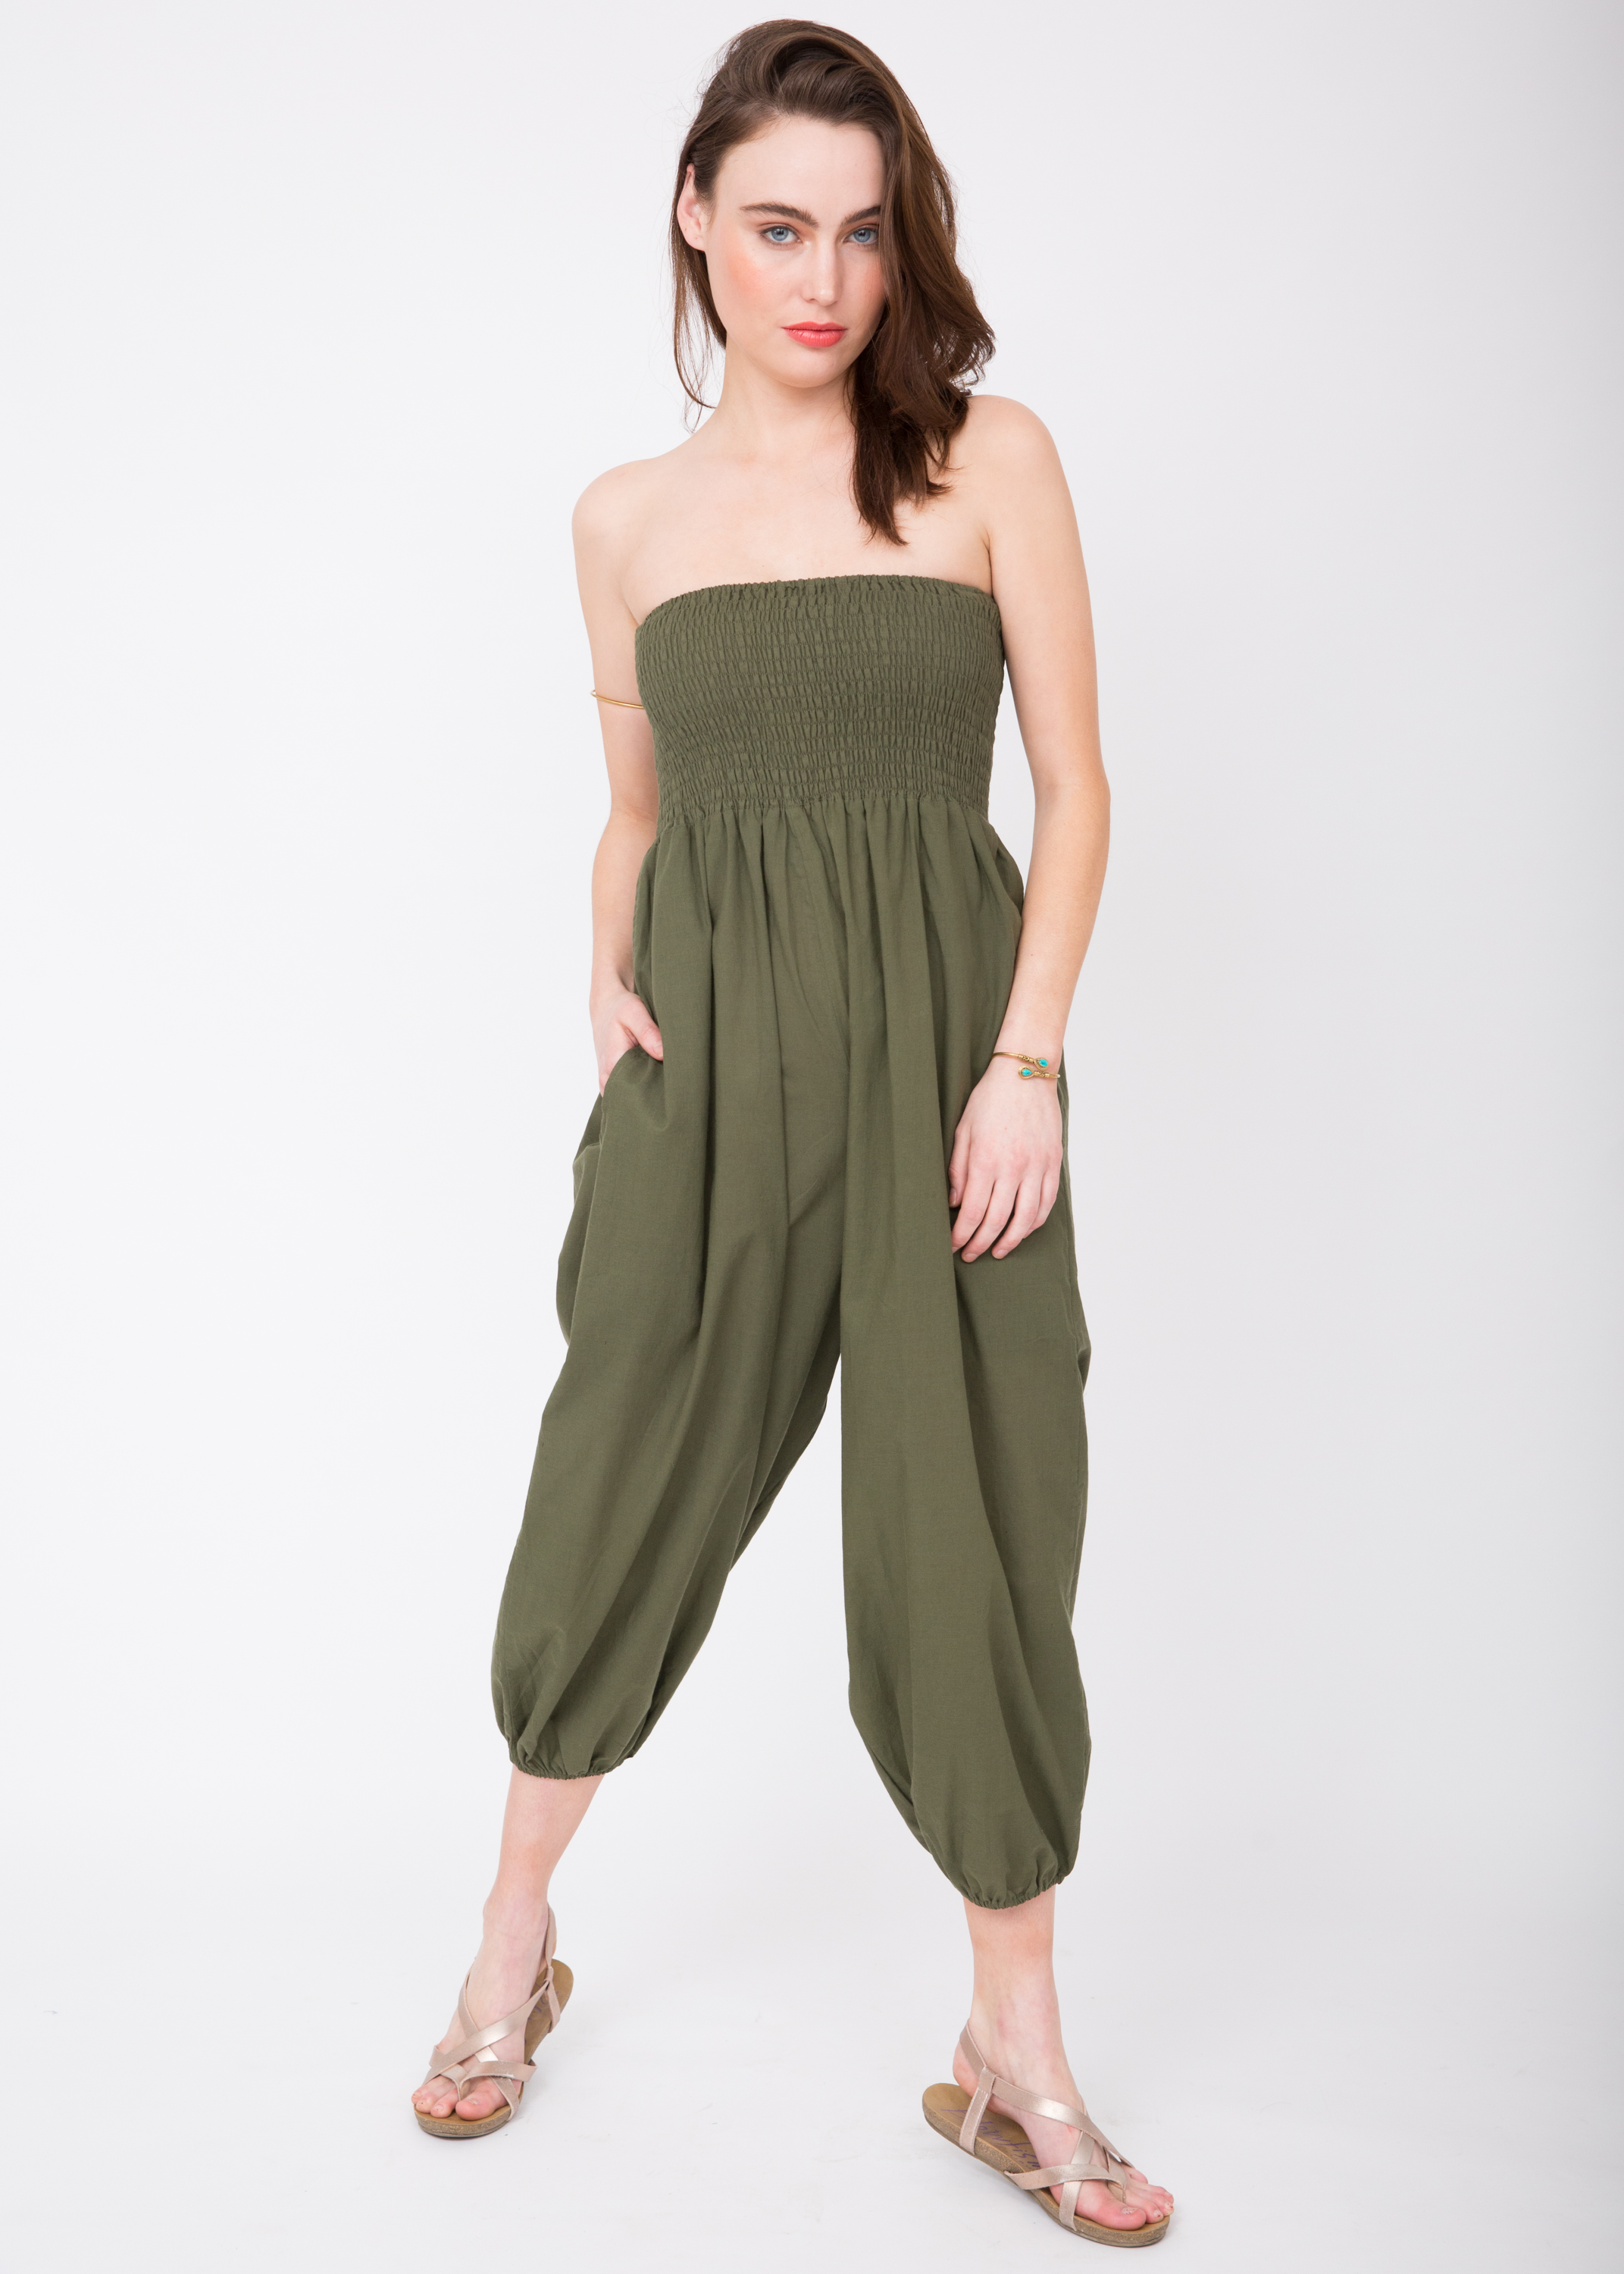 517f2683145 2 in 1 Cotton Harem Trouser or Bandeau Jumpsuit Khaki – likemary